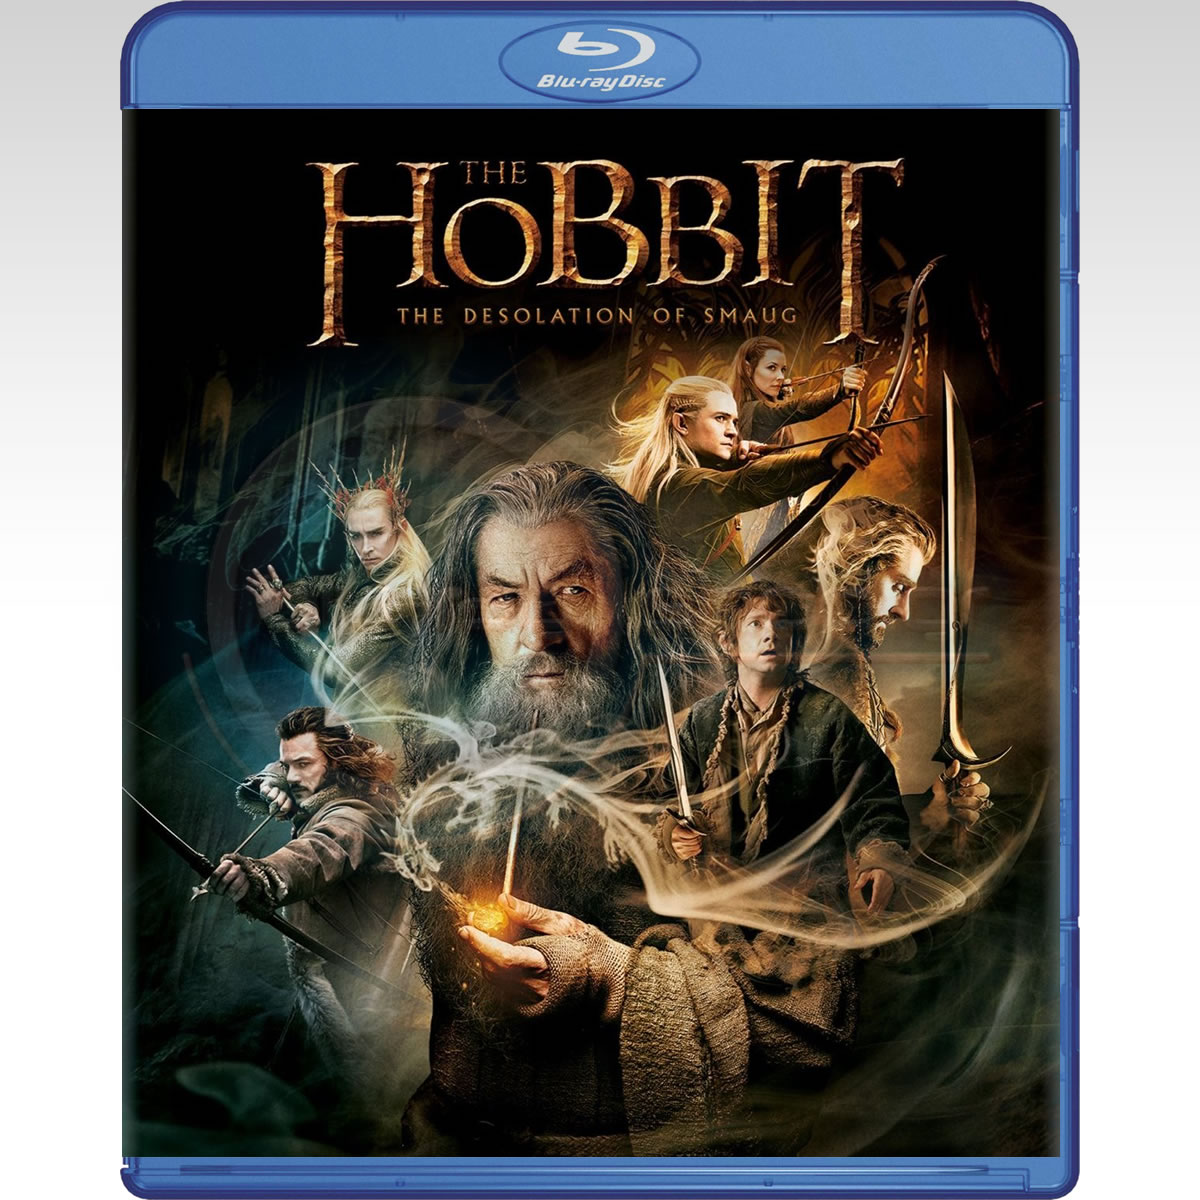 THE HOBBIT: THE DESOLATION OF SMAUG - ������: � ������ ��� �������� (BLU-RAY)